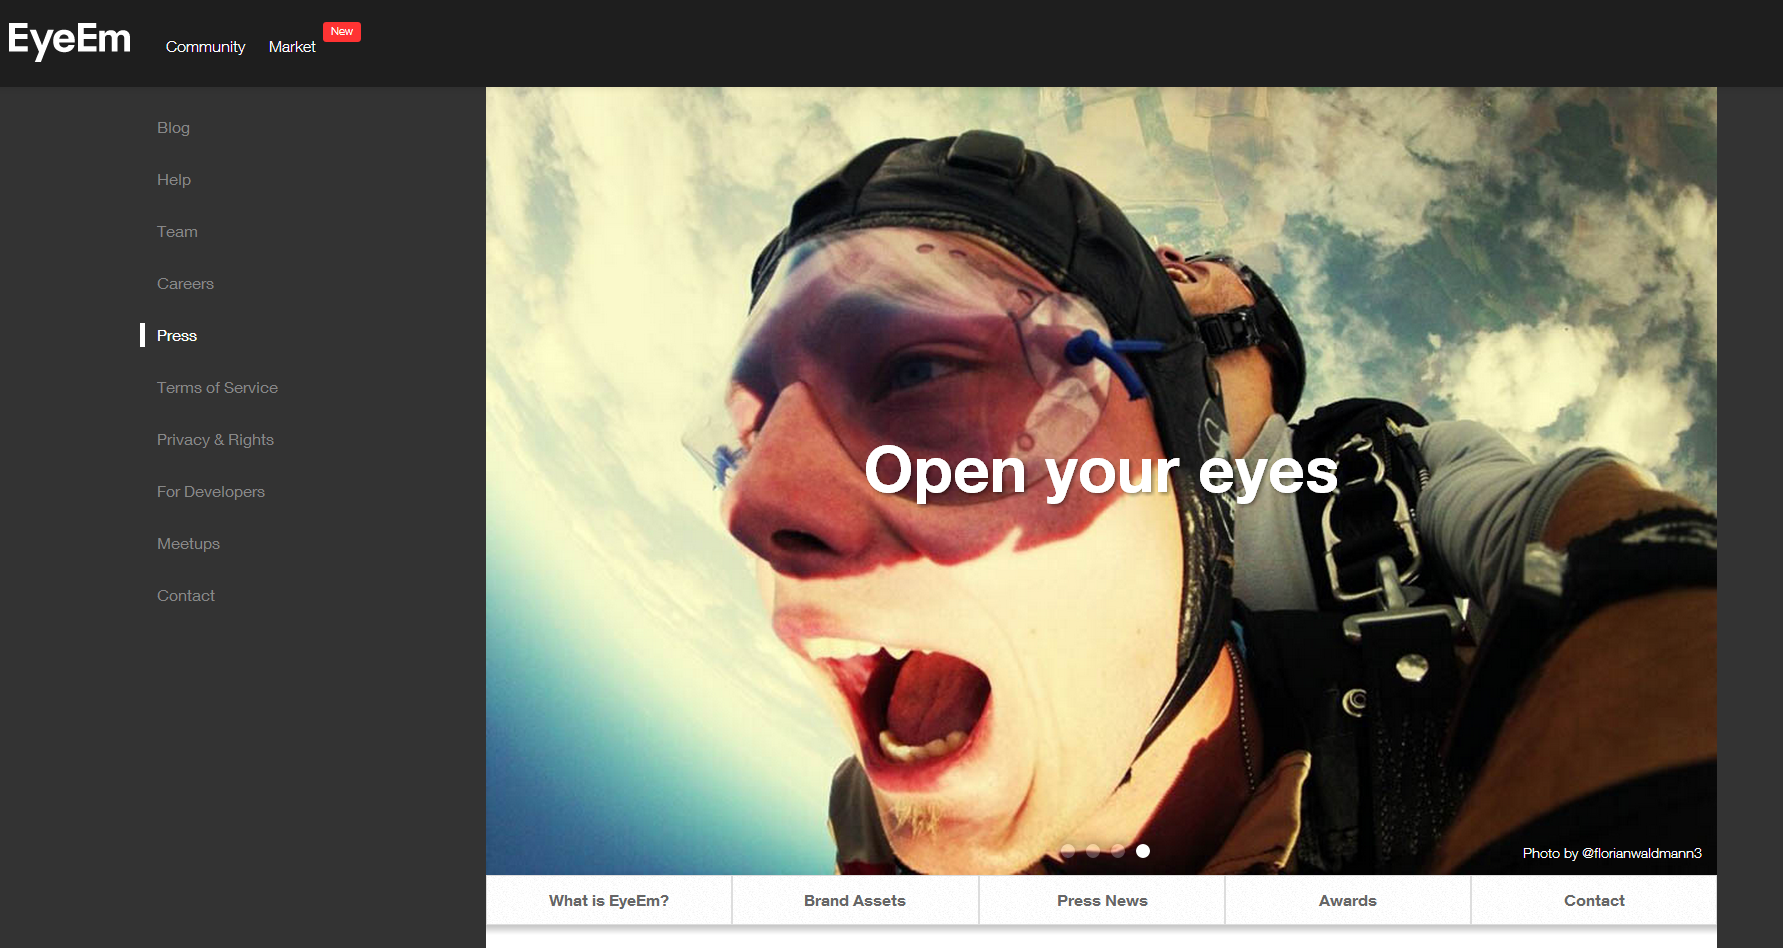 EyeEm: open your eyes.